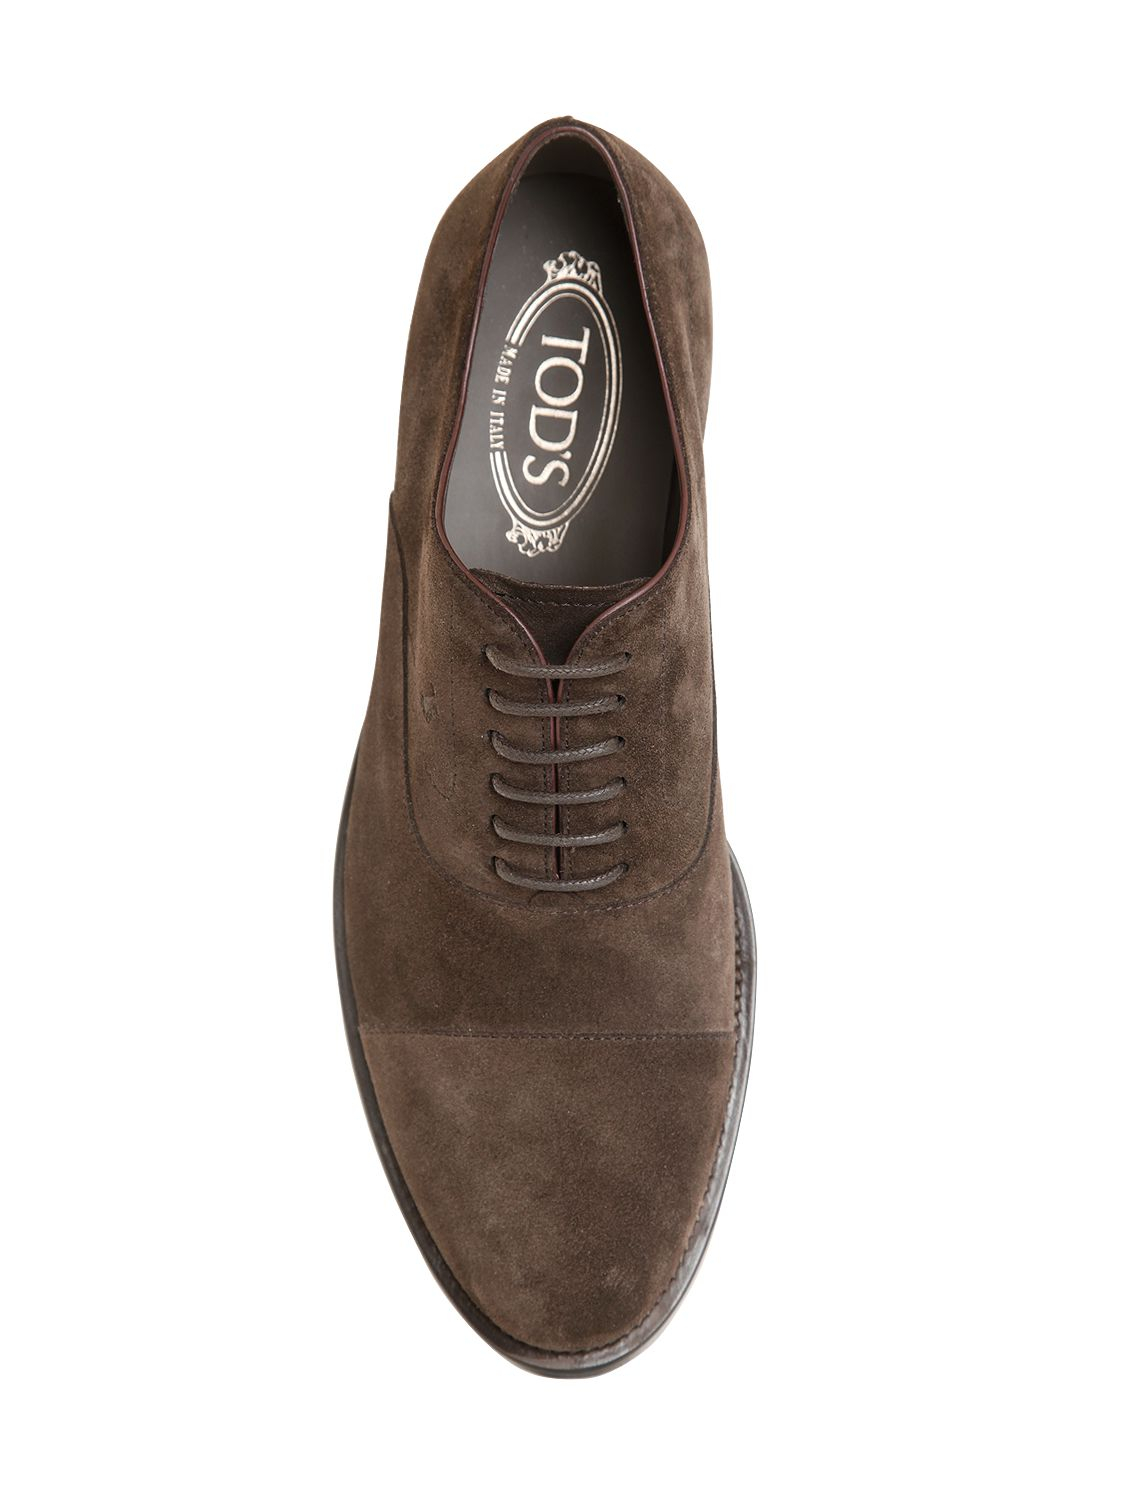 Suede Oxford shoes Tod's GxxlOh2rmb